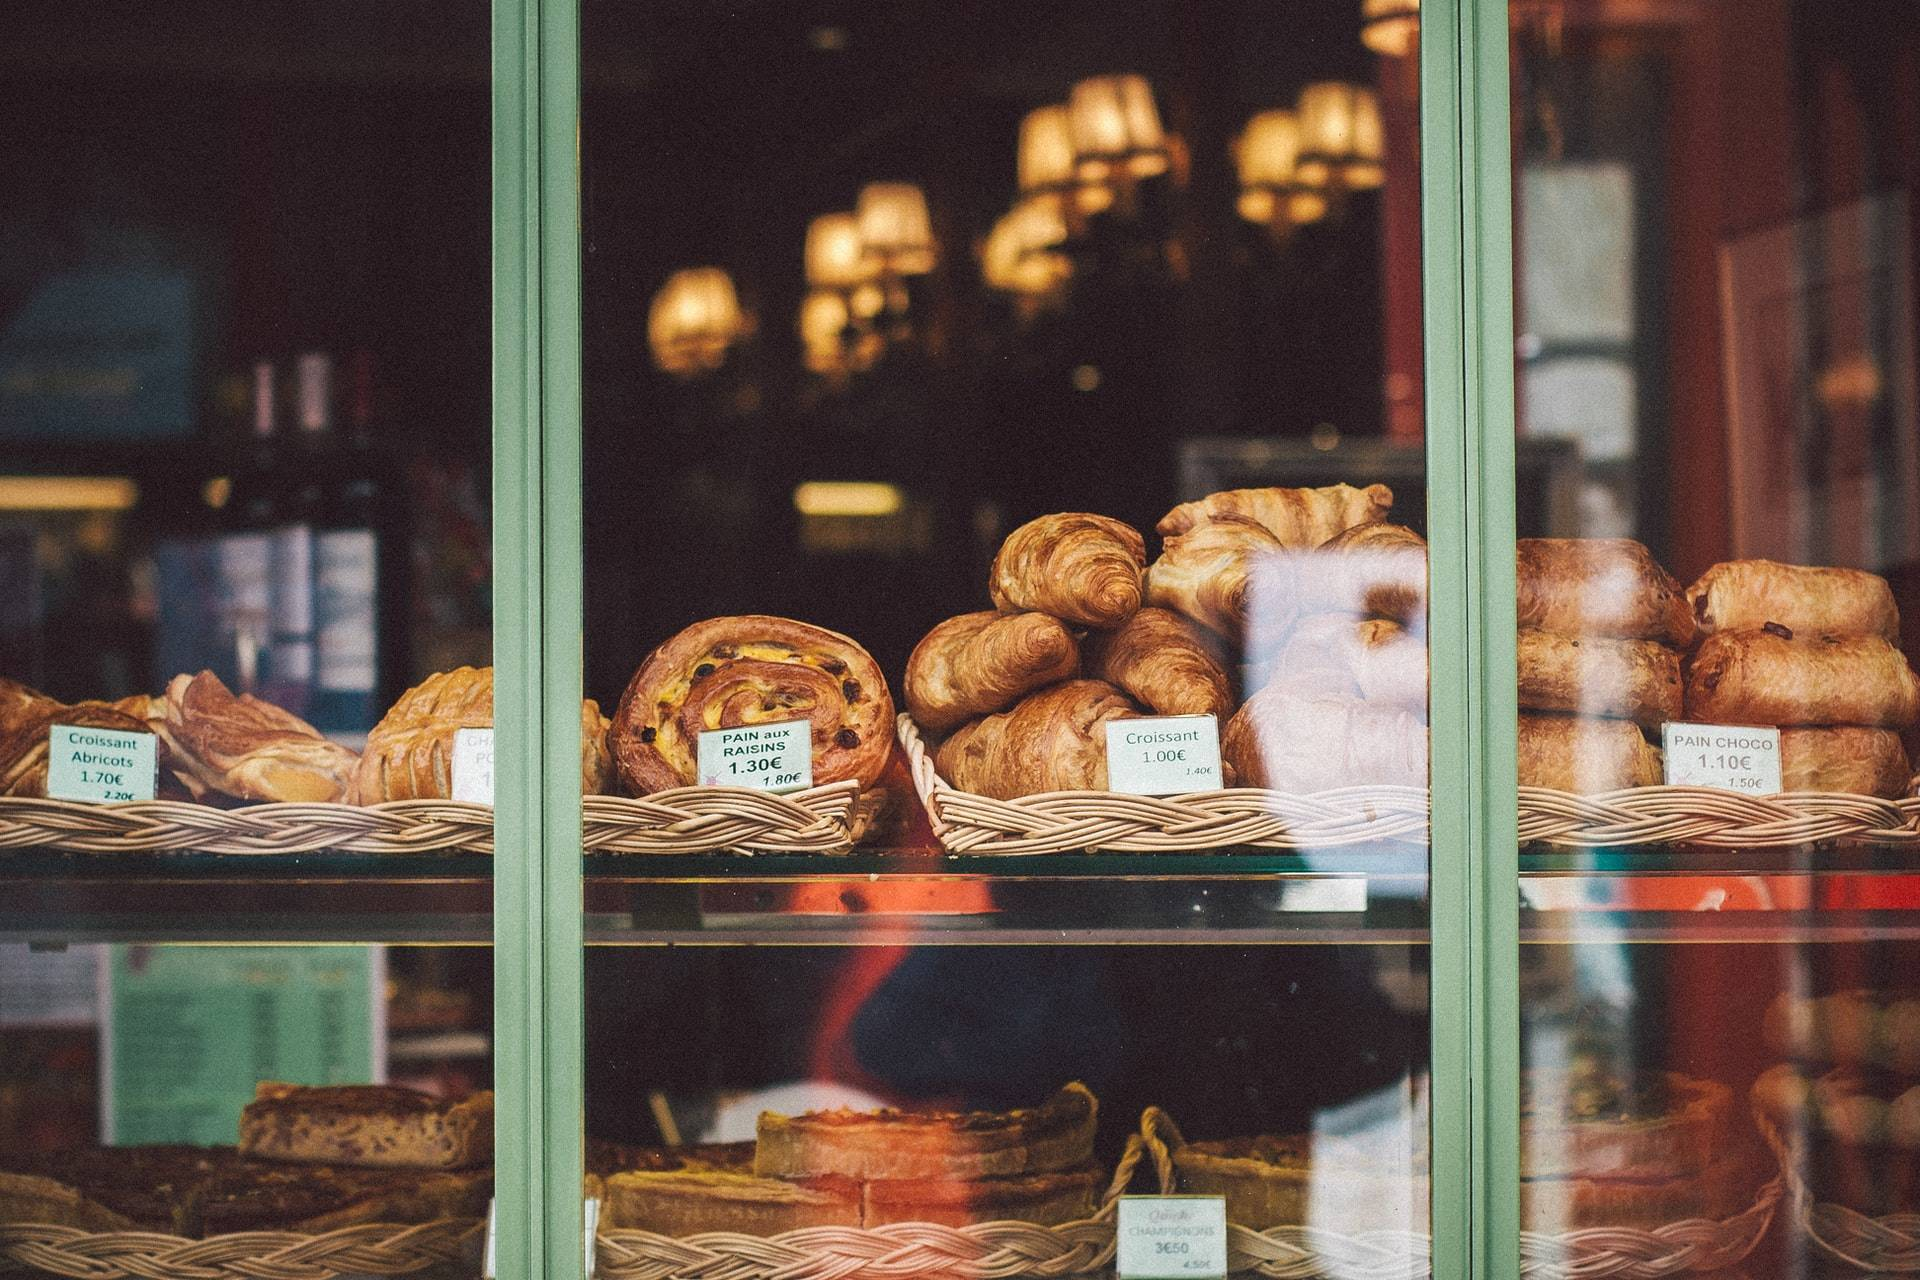 Croissants inParis for foodie travelers